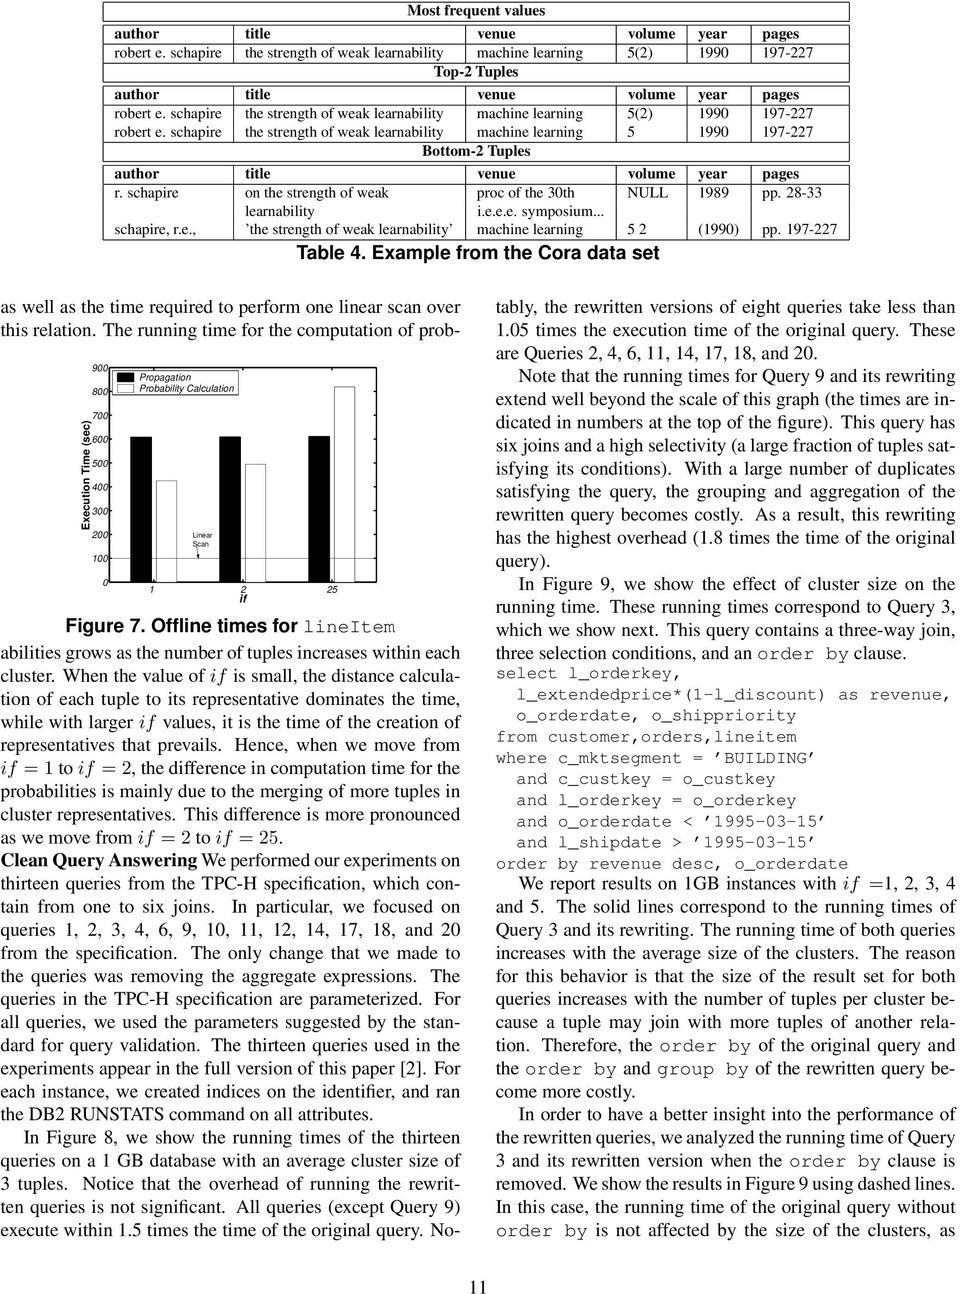 schapire the strength of weak learnability machine learning 5(2) 1990 197-227 robert e.